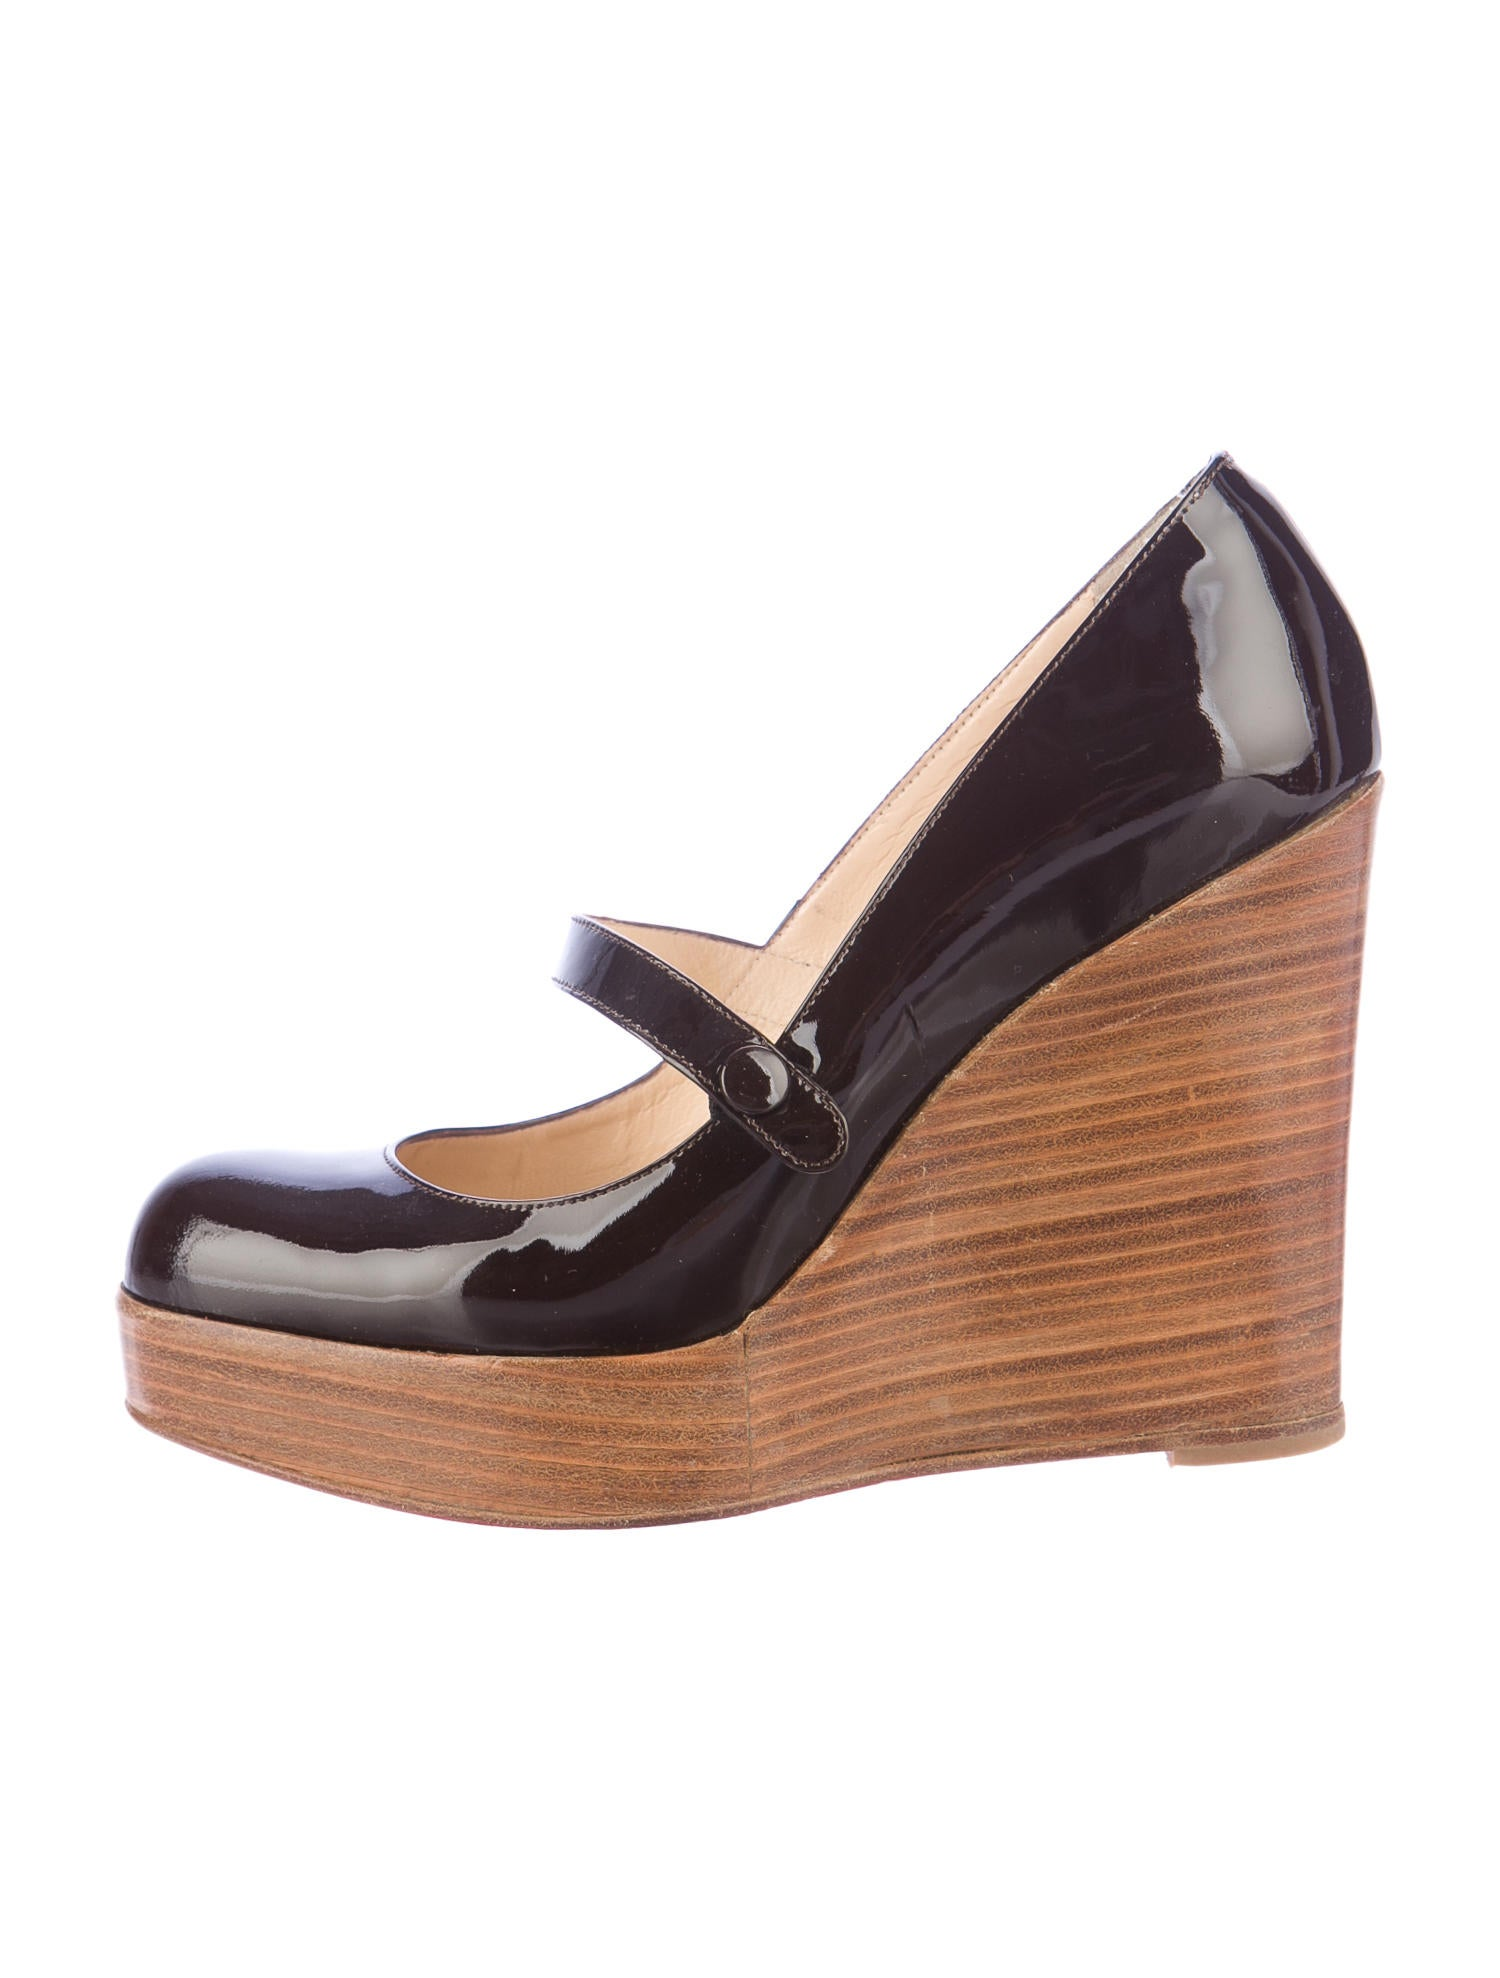 louboutin mary jane wedge